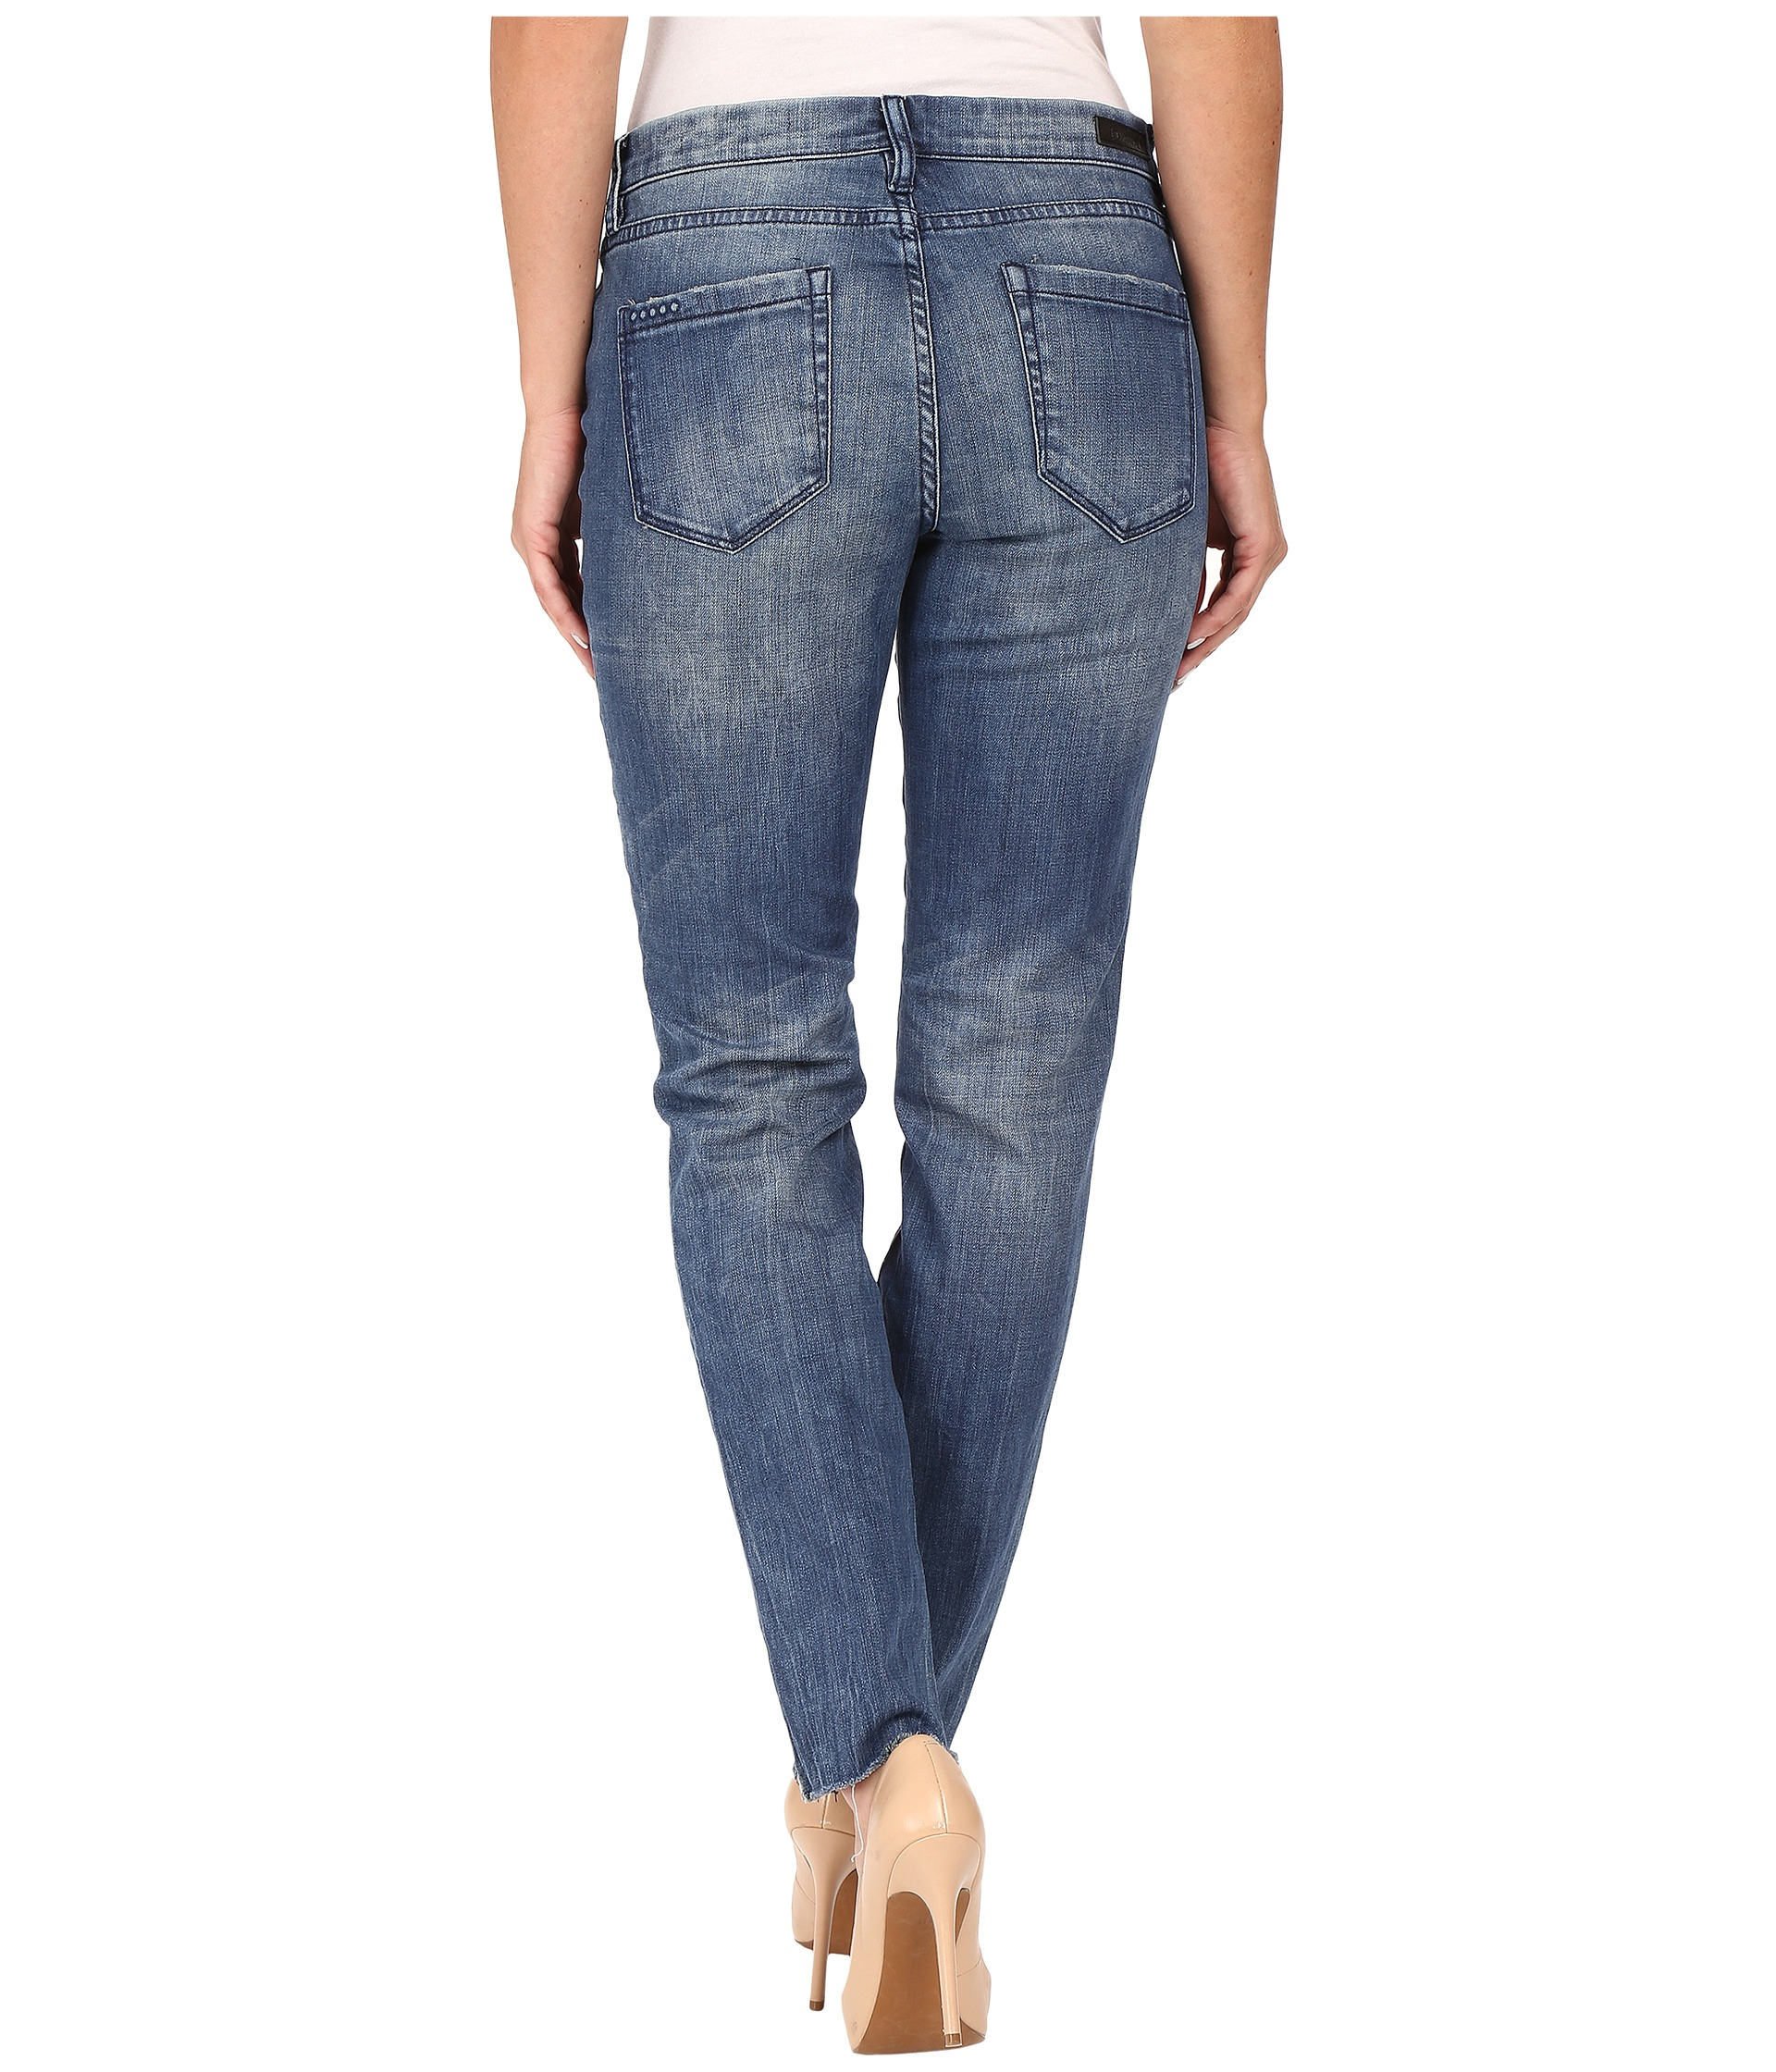 Click here to browse and buy from our range of Blank NYC - Blank NYC Denim - Blank NYC Jeans - steam-key.gq